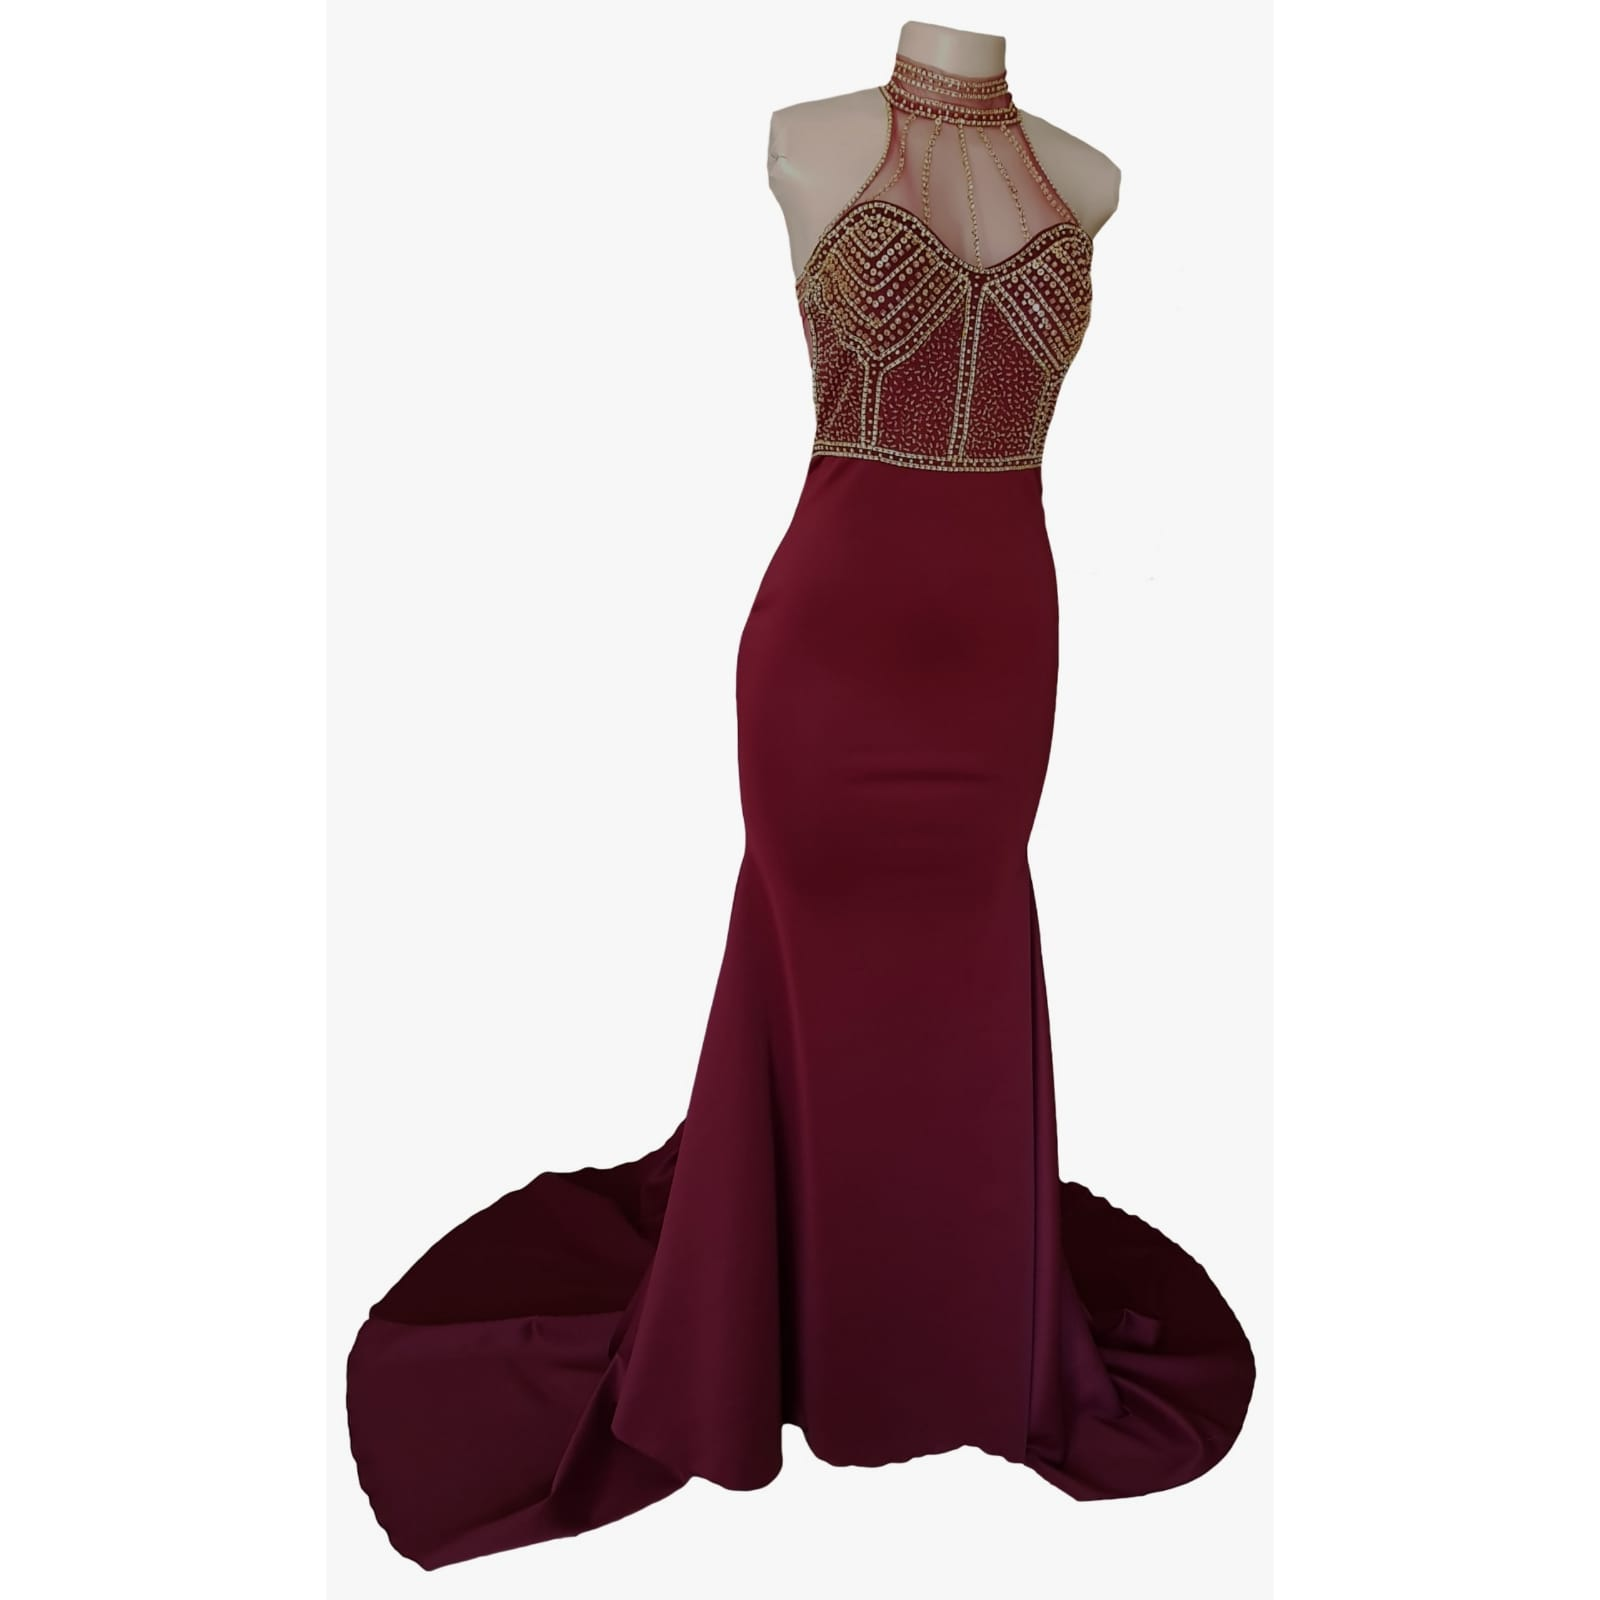 Maroon and gold matric farewell dress with a beaded bodice 11 maroon and gold matric farewell dress with a beaded bodice, low open back with beaded illusion straps. Illusion choker neckline detail with beads and diamante, with a slit and a train.